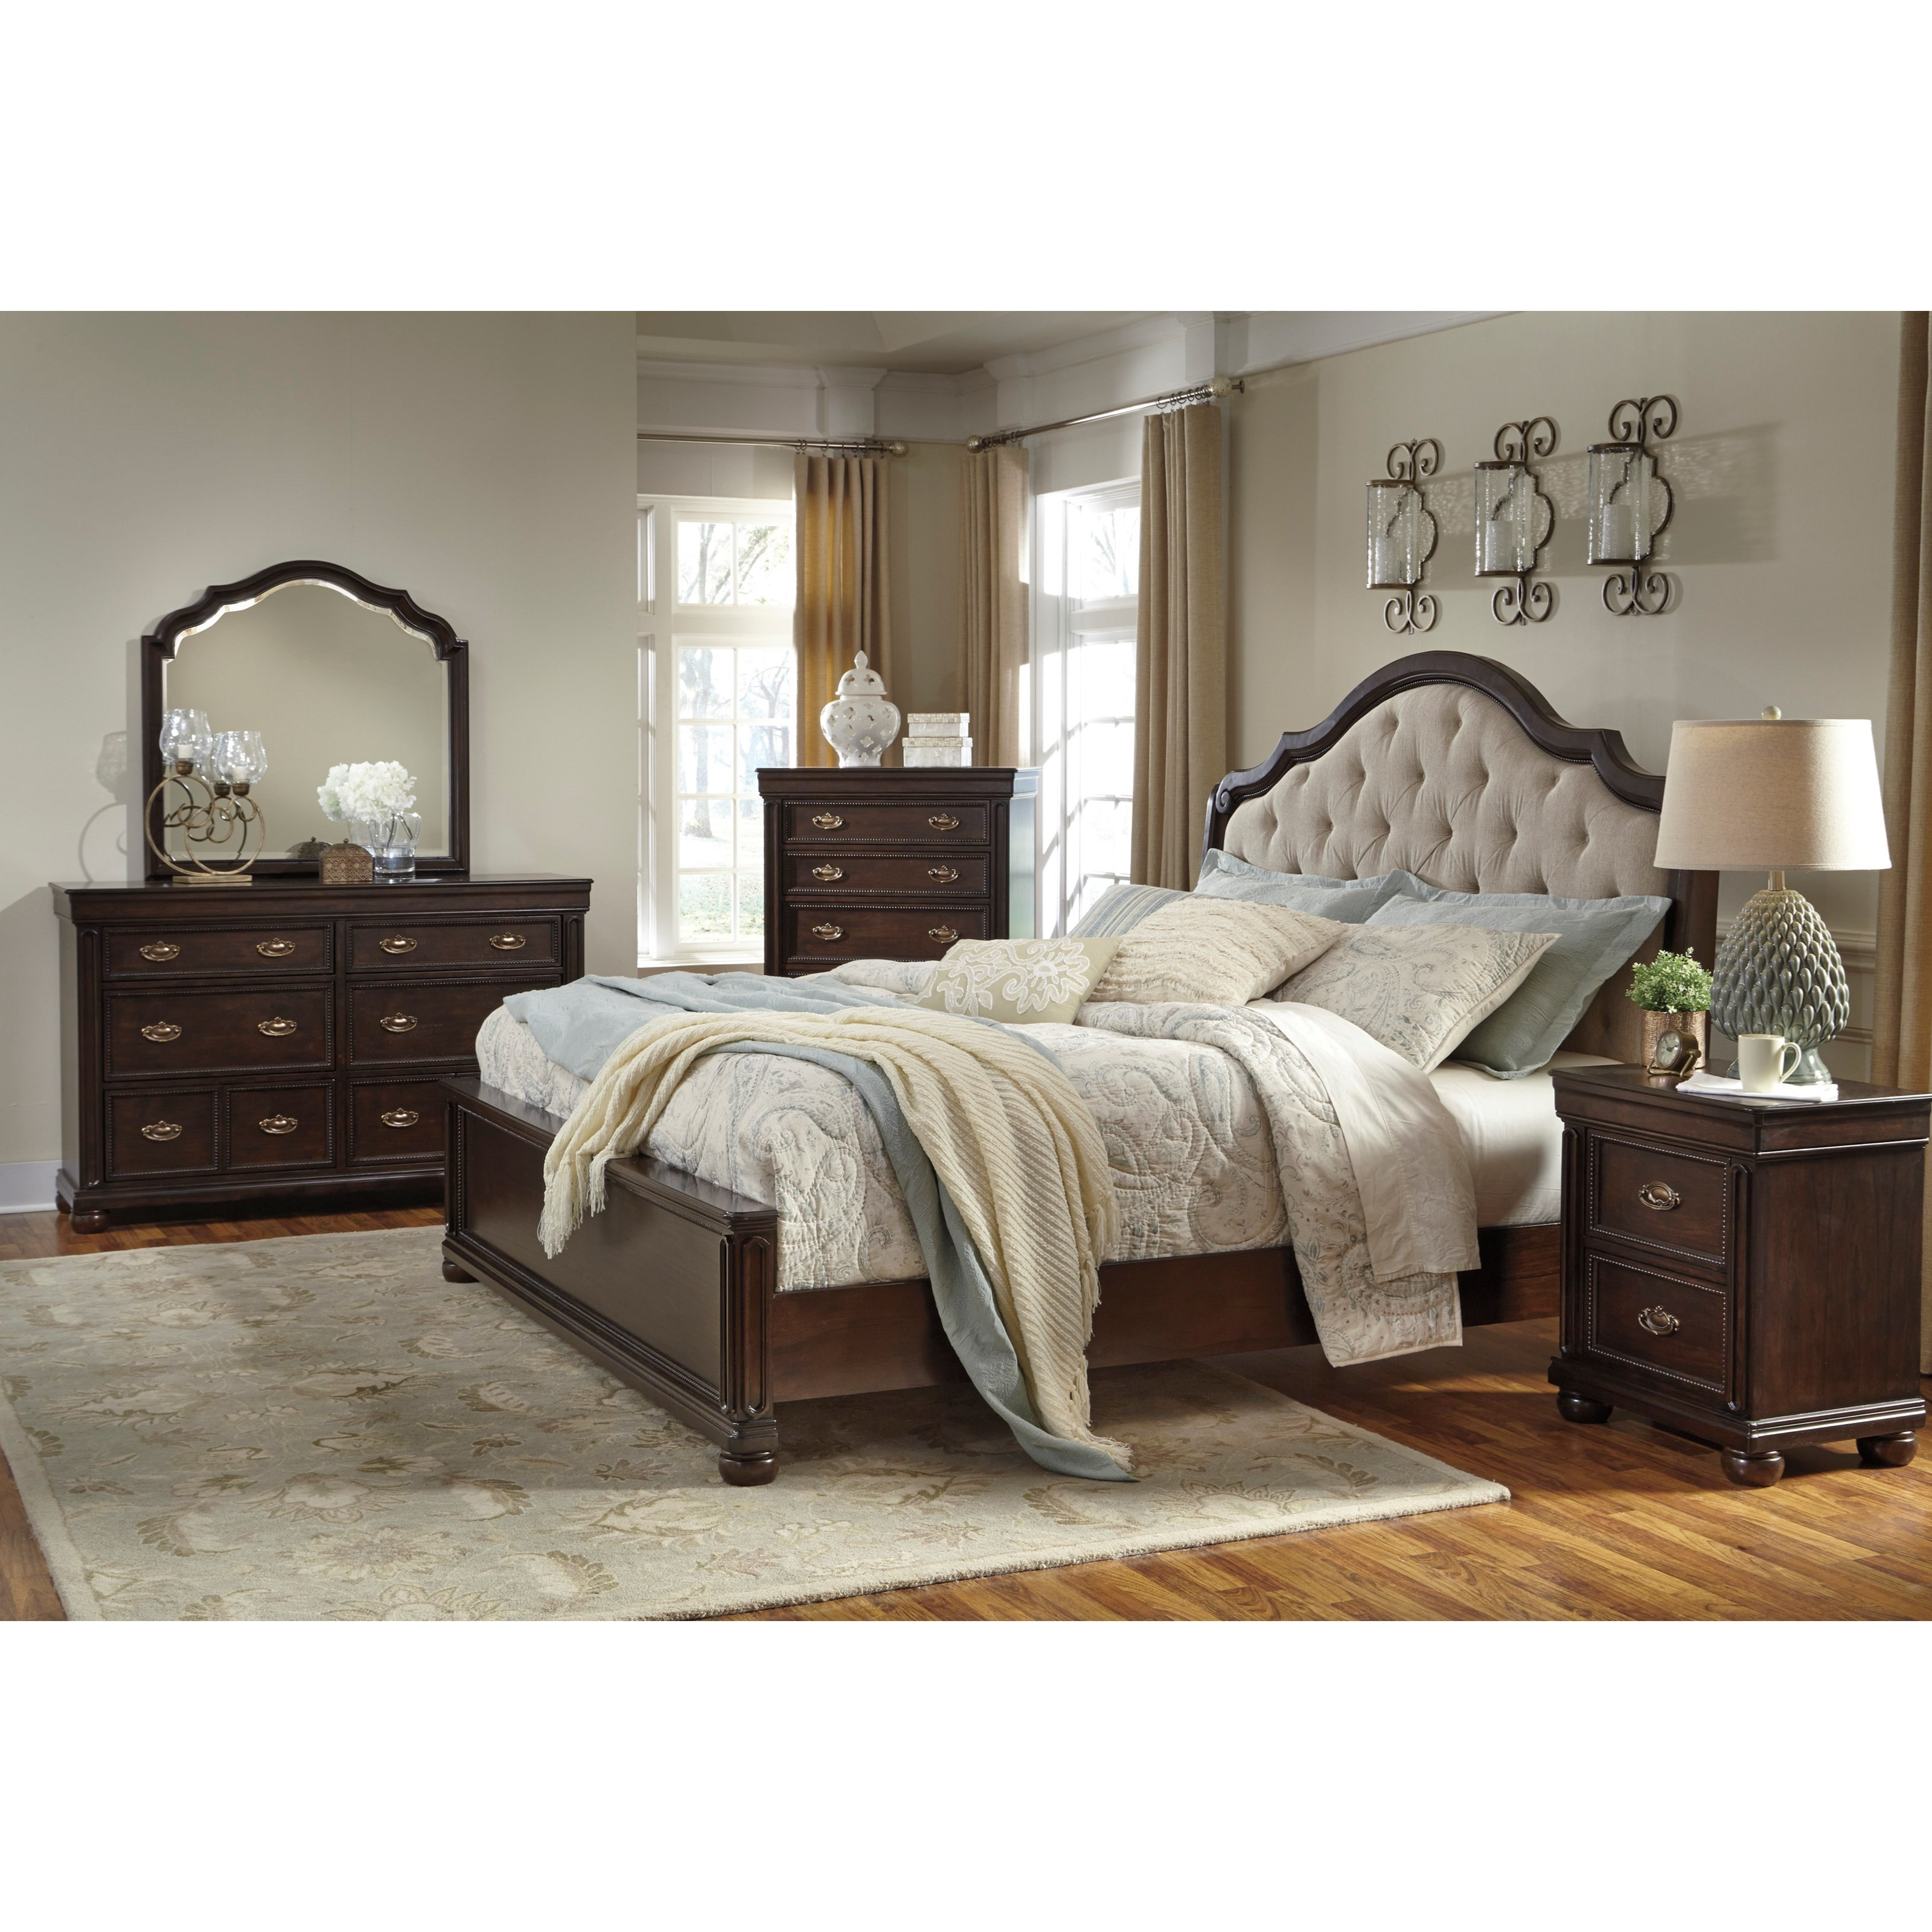 Signature Design by Ashley Moluxy California King Bedroom Group - Item Number: B596 CK Bedroom Group 1